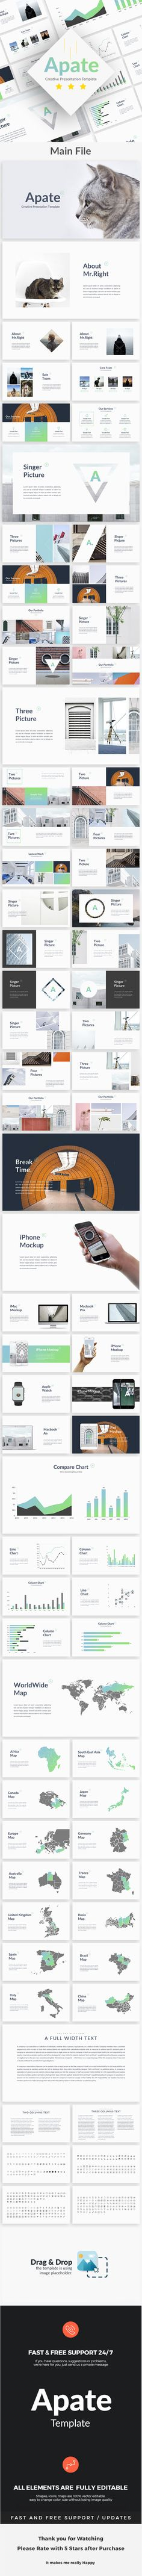 Apate - Creative Powerpoint Template